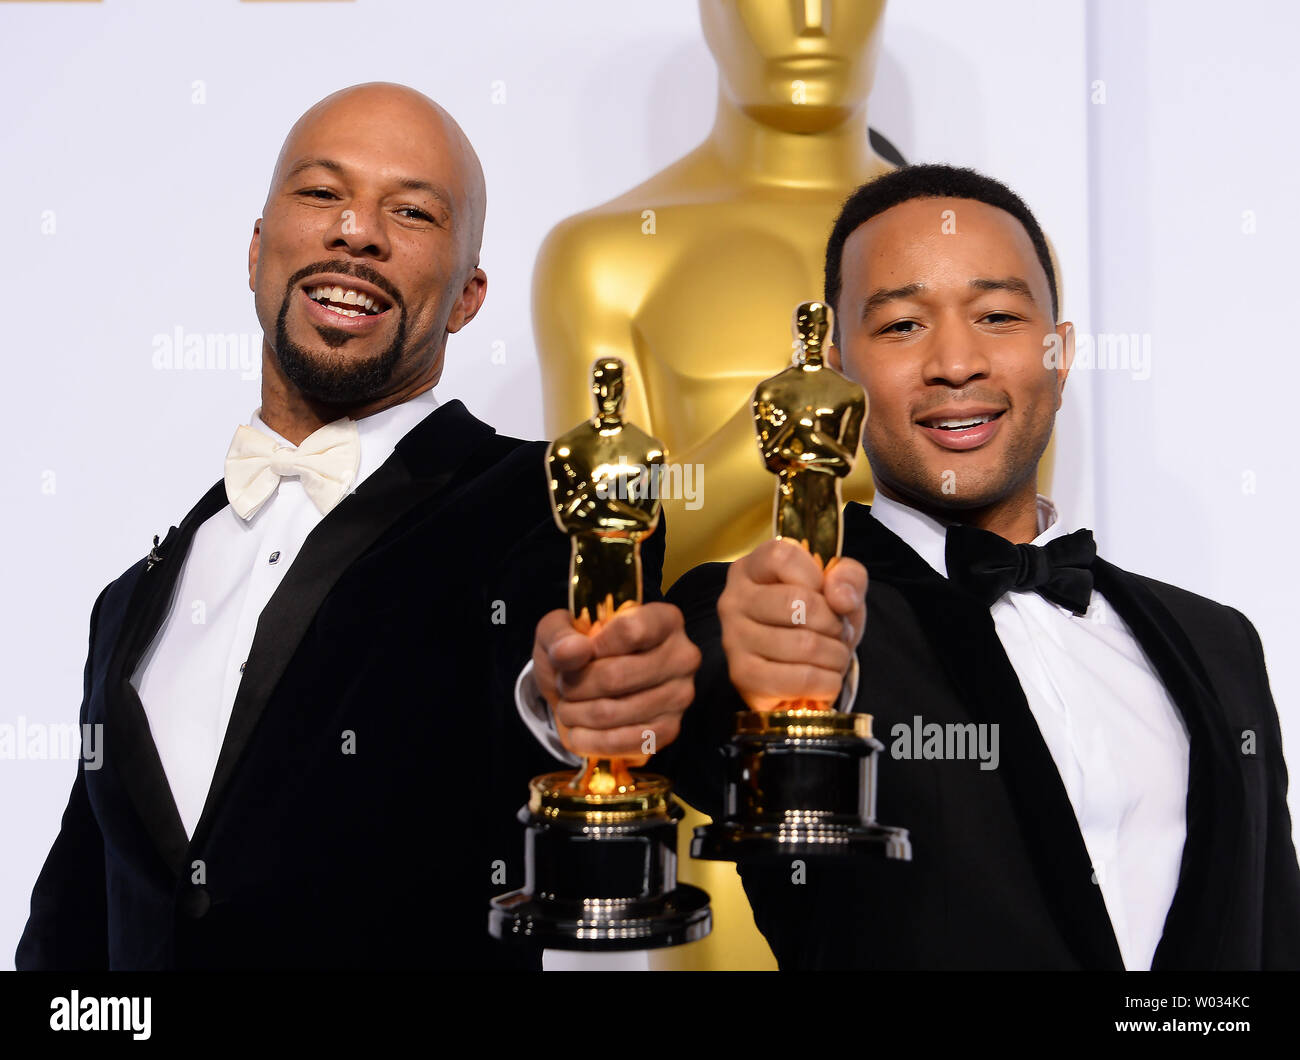 download song glory by john legend and common